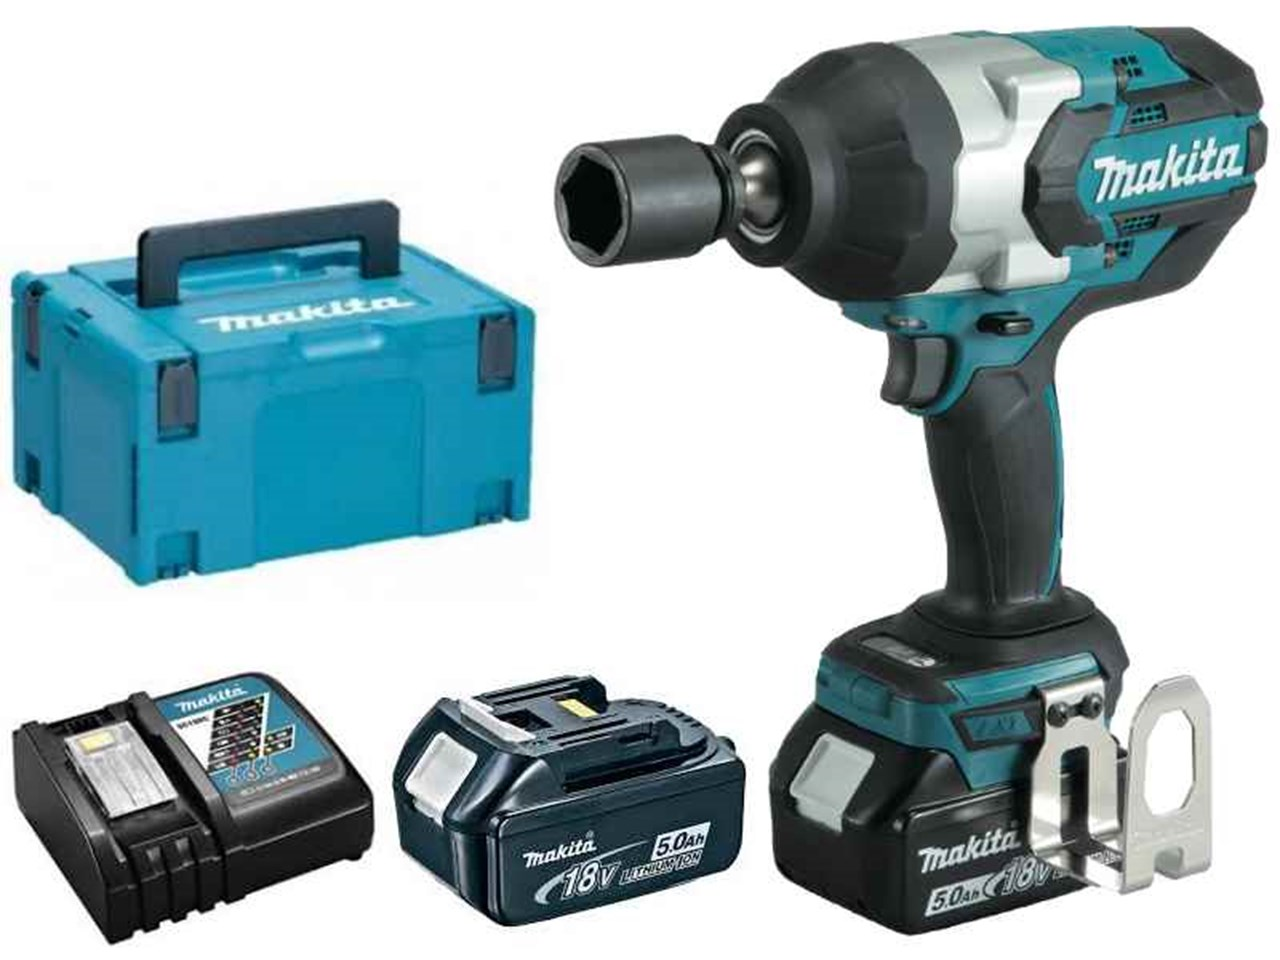 makita dtw1001rtj 18v 2x5 0ah li ion lxt brushless 3 4in impact wrench kit. Black Bedroom Furniture Sets. Home Design Ideas